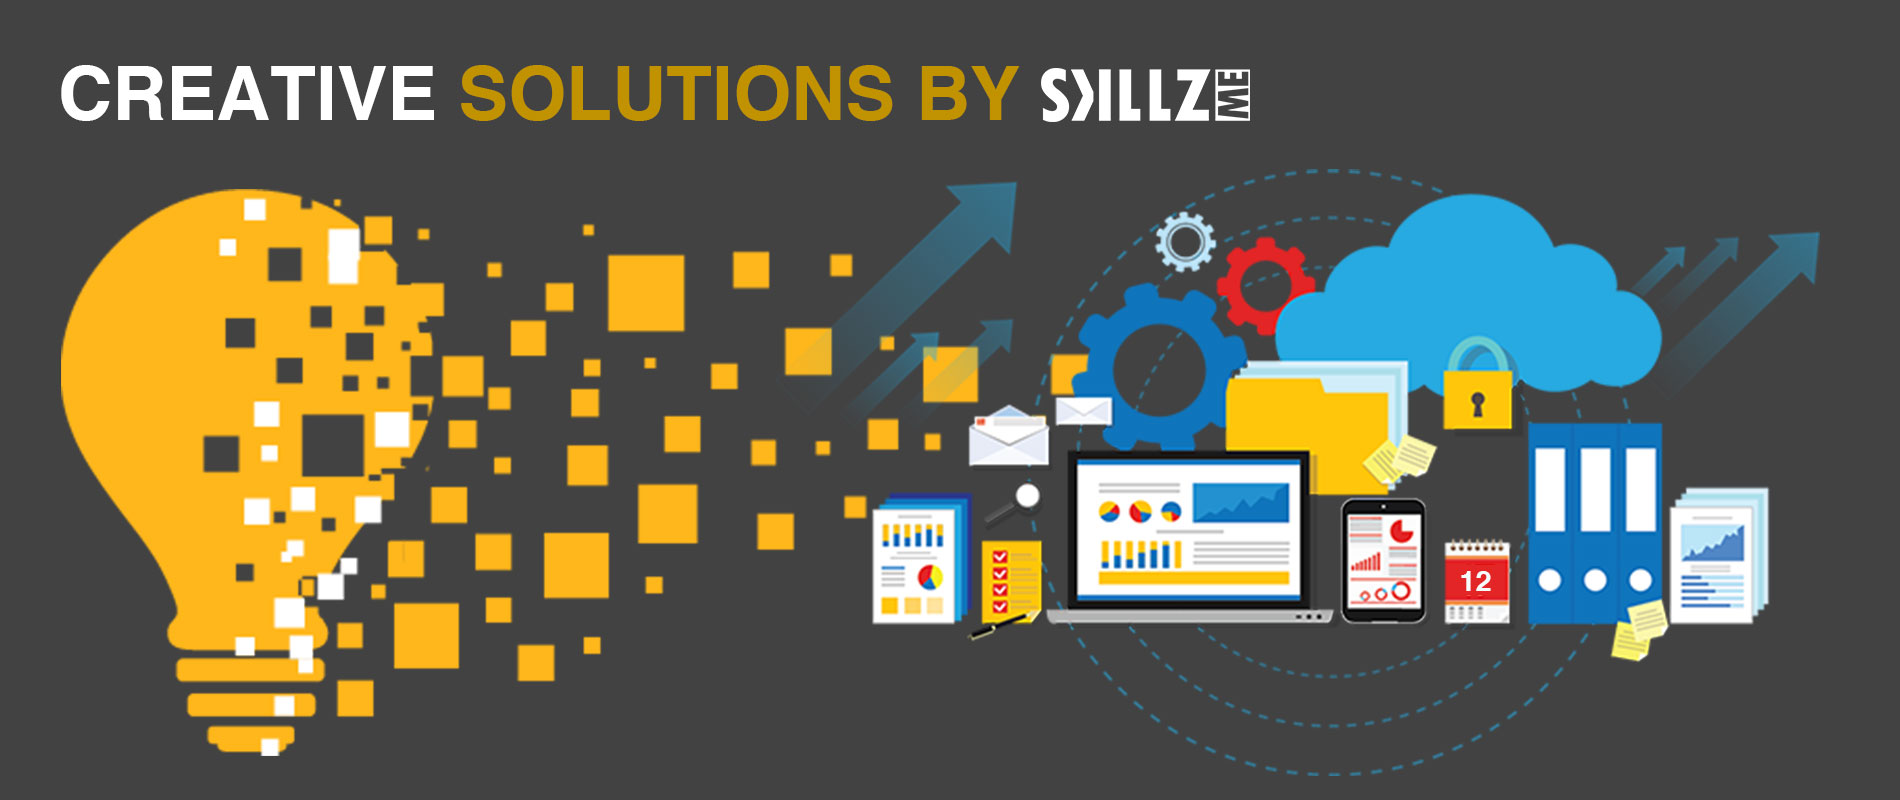 Skillz Creative Solutions